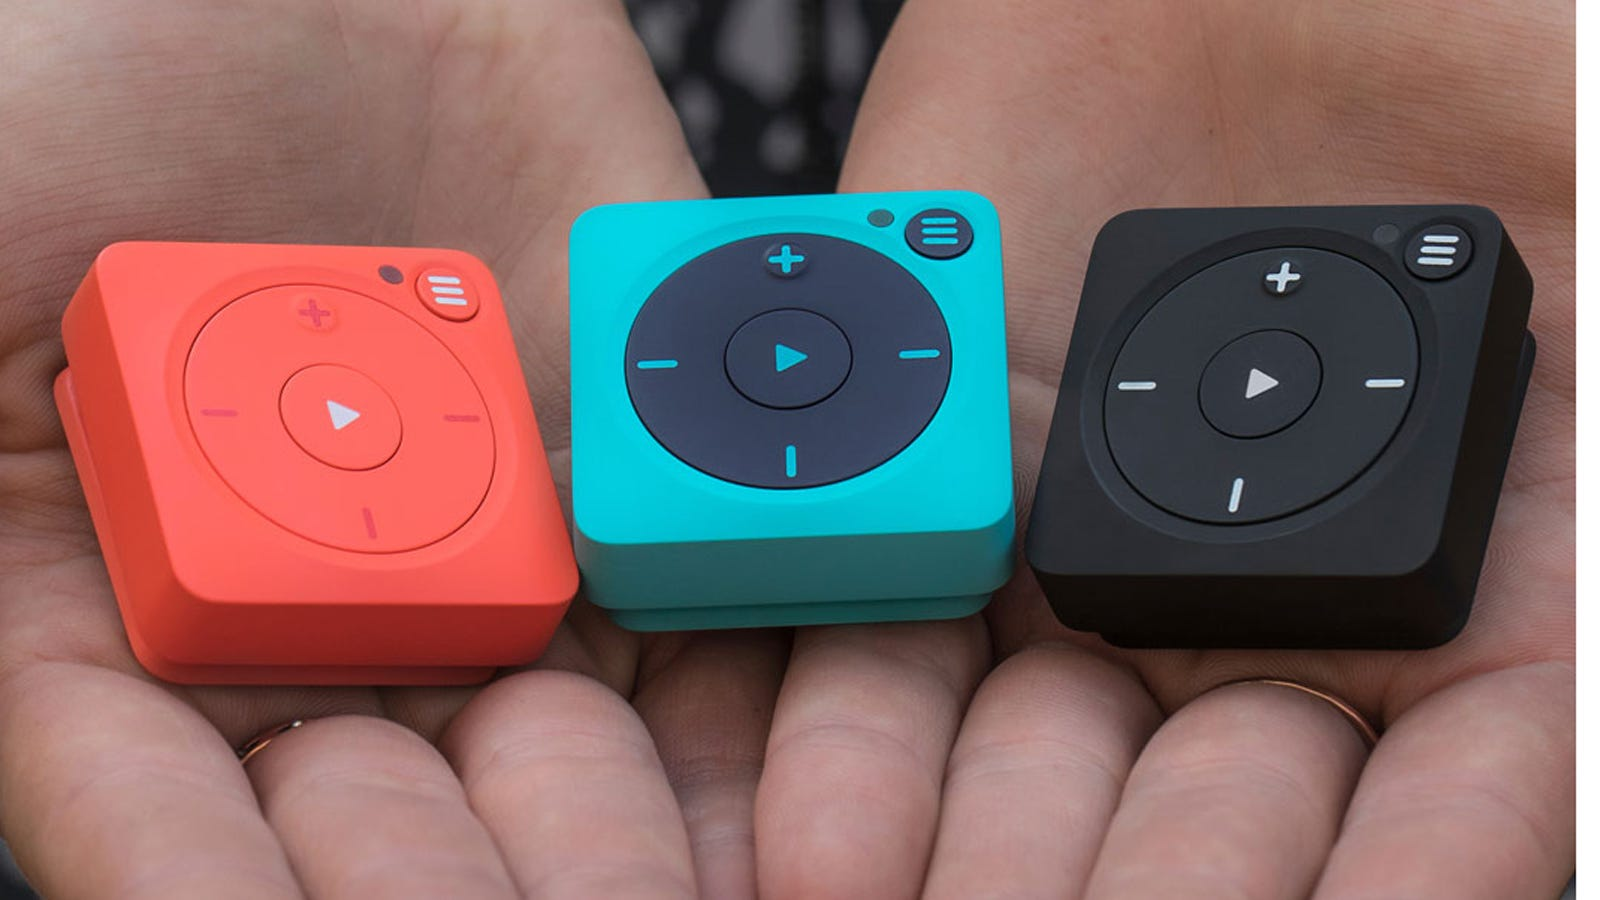 Someone's hands cupped and holding three Mighty Vibe players in red, blue, and black.